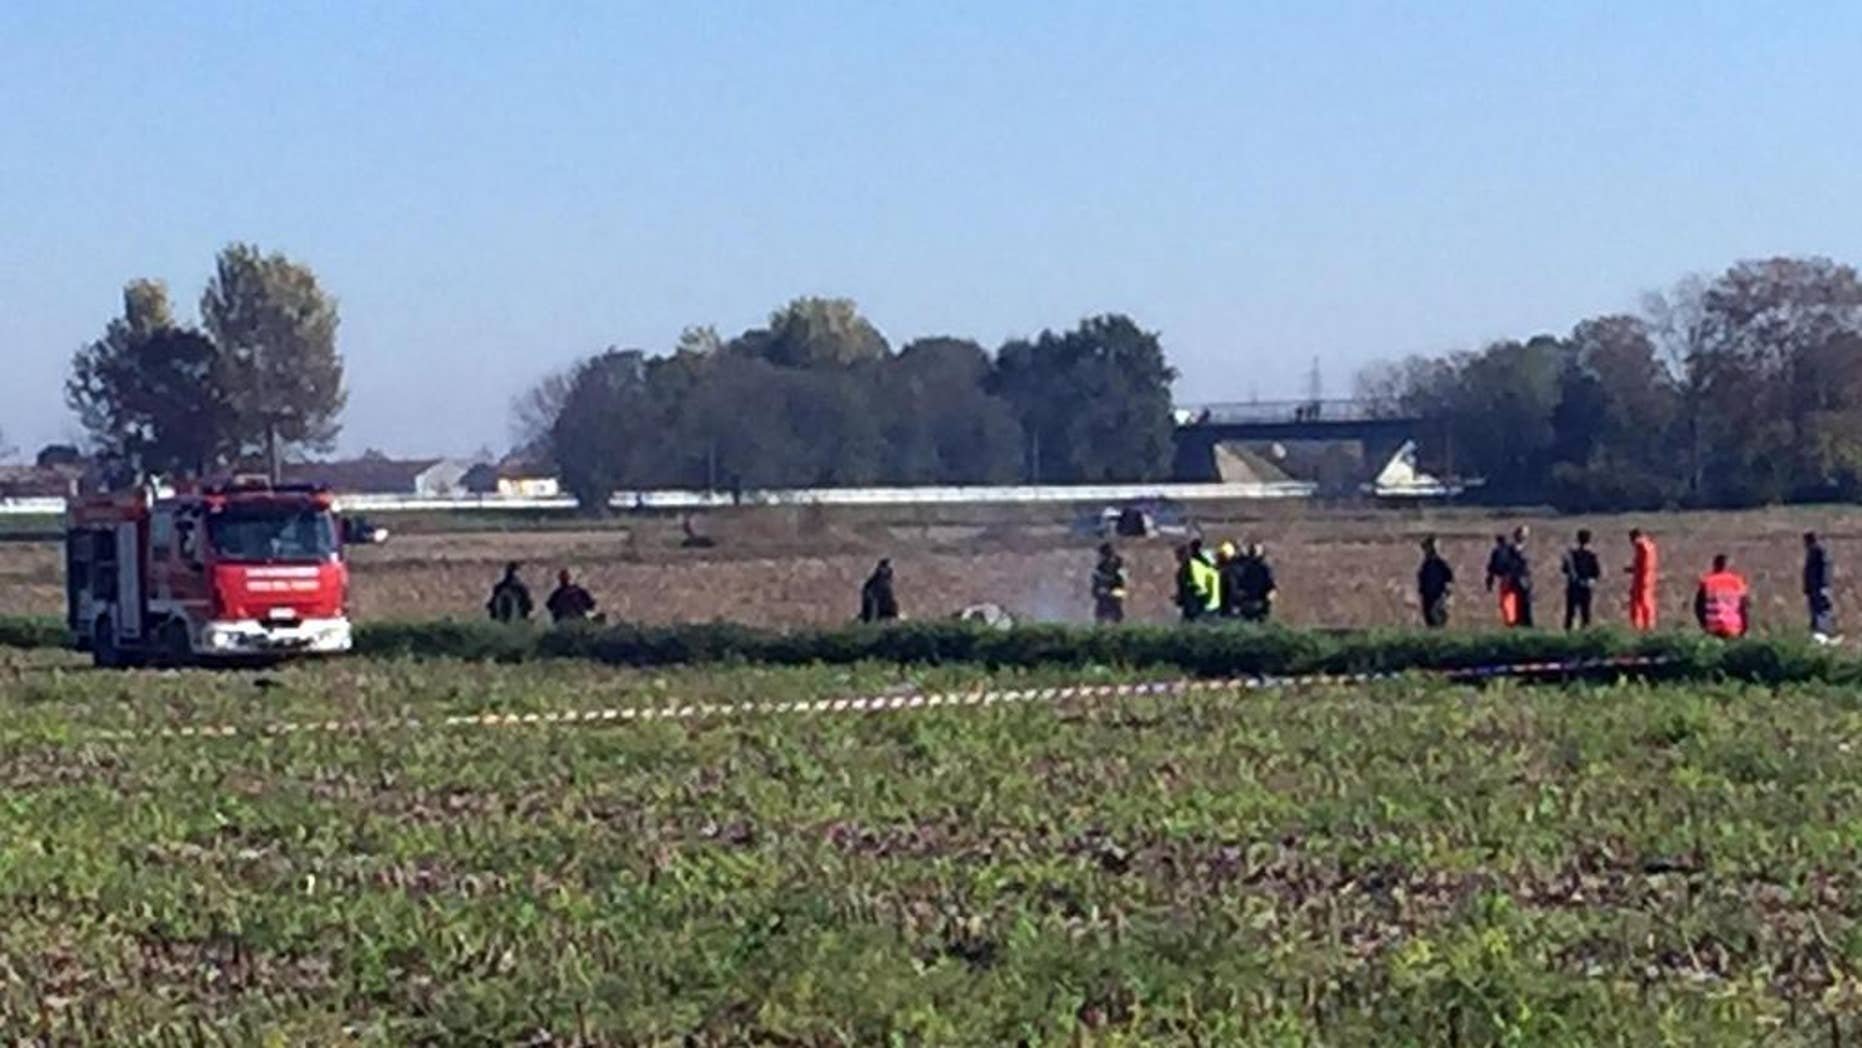 Rescue teams operate in the area where an aircraft crashed in a mid-air incident, in Santhia, near Vercelli, Italy, Friday, Oct. 30, 2015. The AgustaWestland helicopter maker says that a prototype of one of its aircraft was involved in a mid-air accident that killed both occupants in northern Italy. (Roberto Maggio/ANSA via AP) ITALY OUT